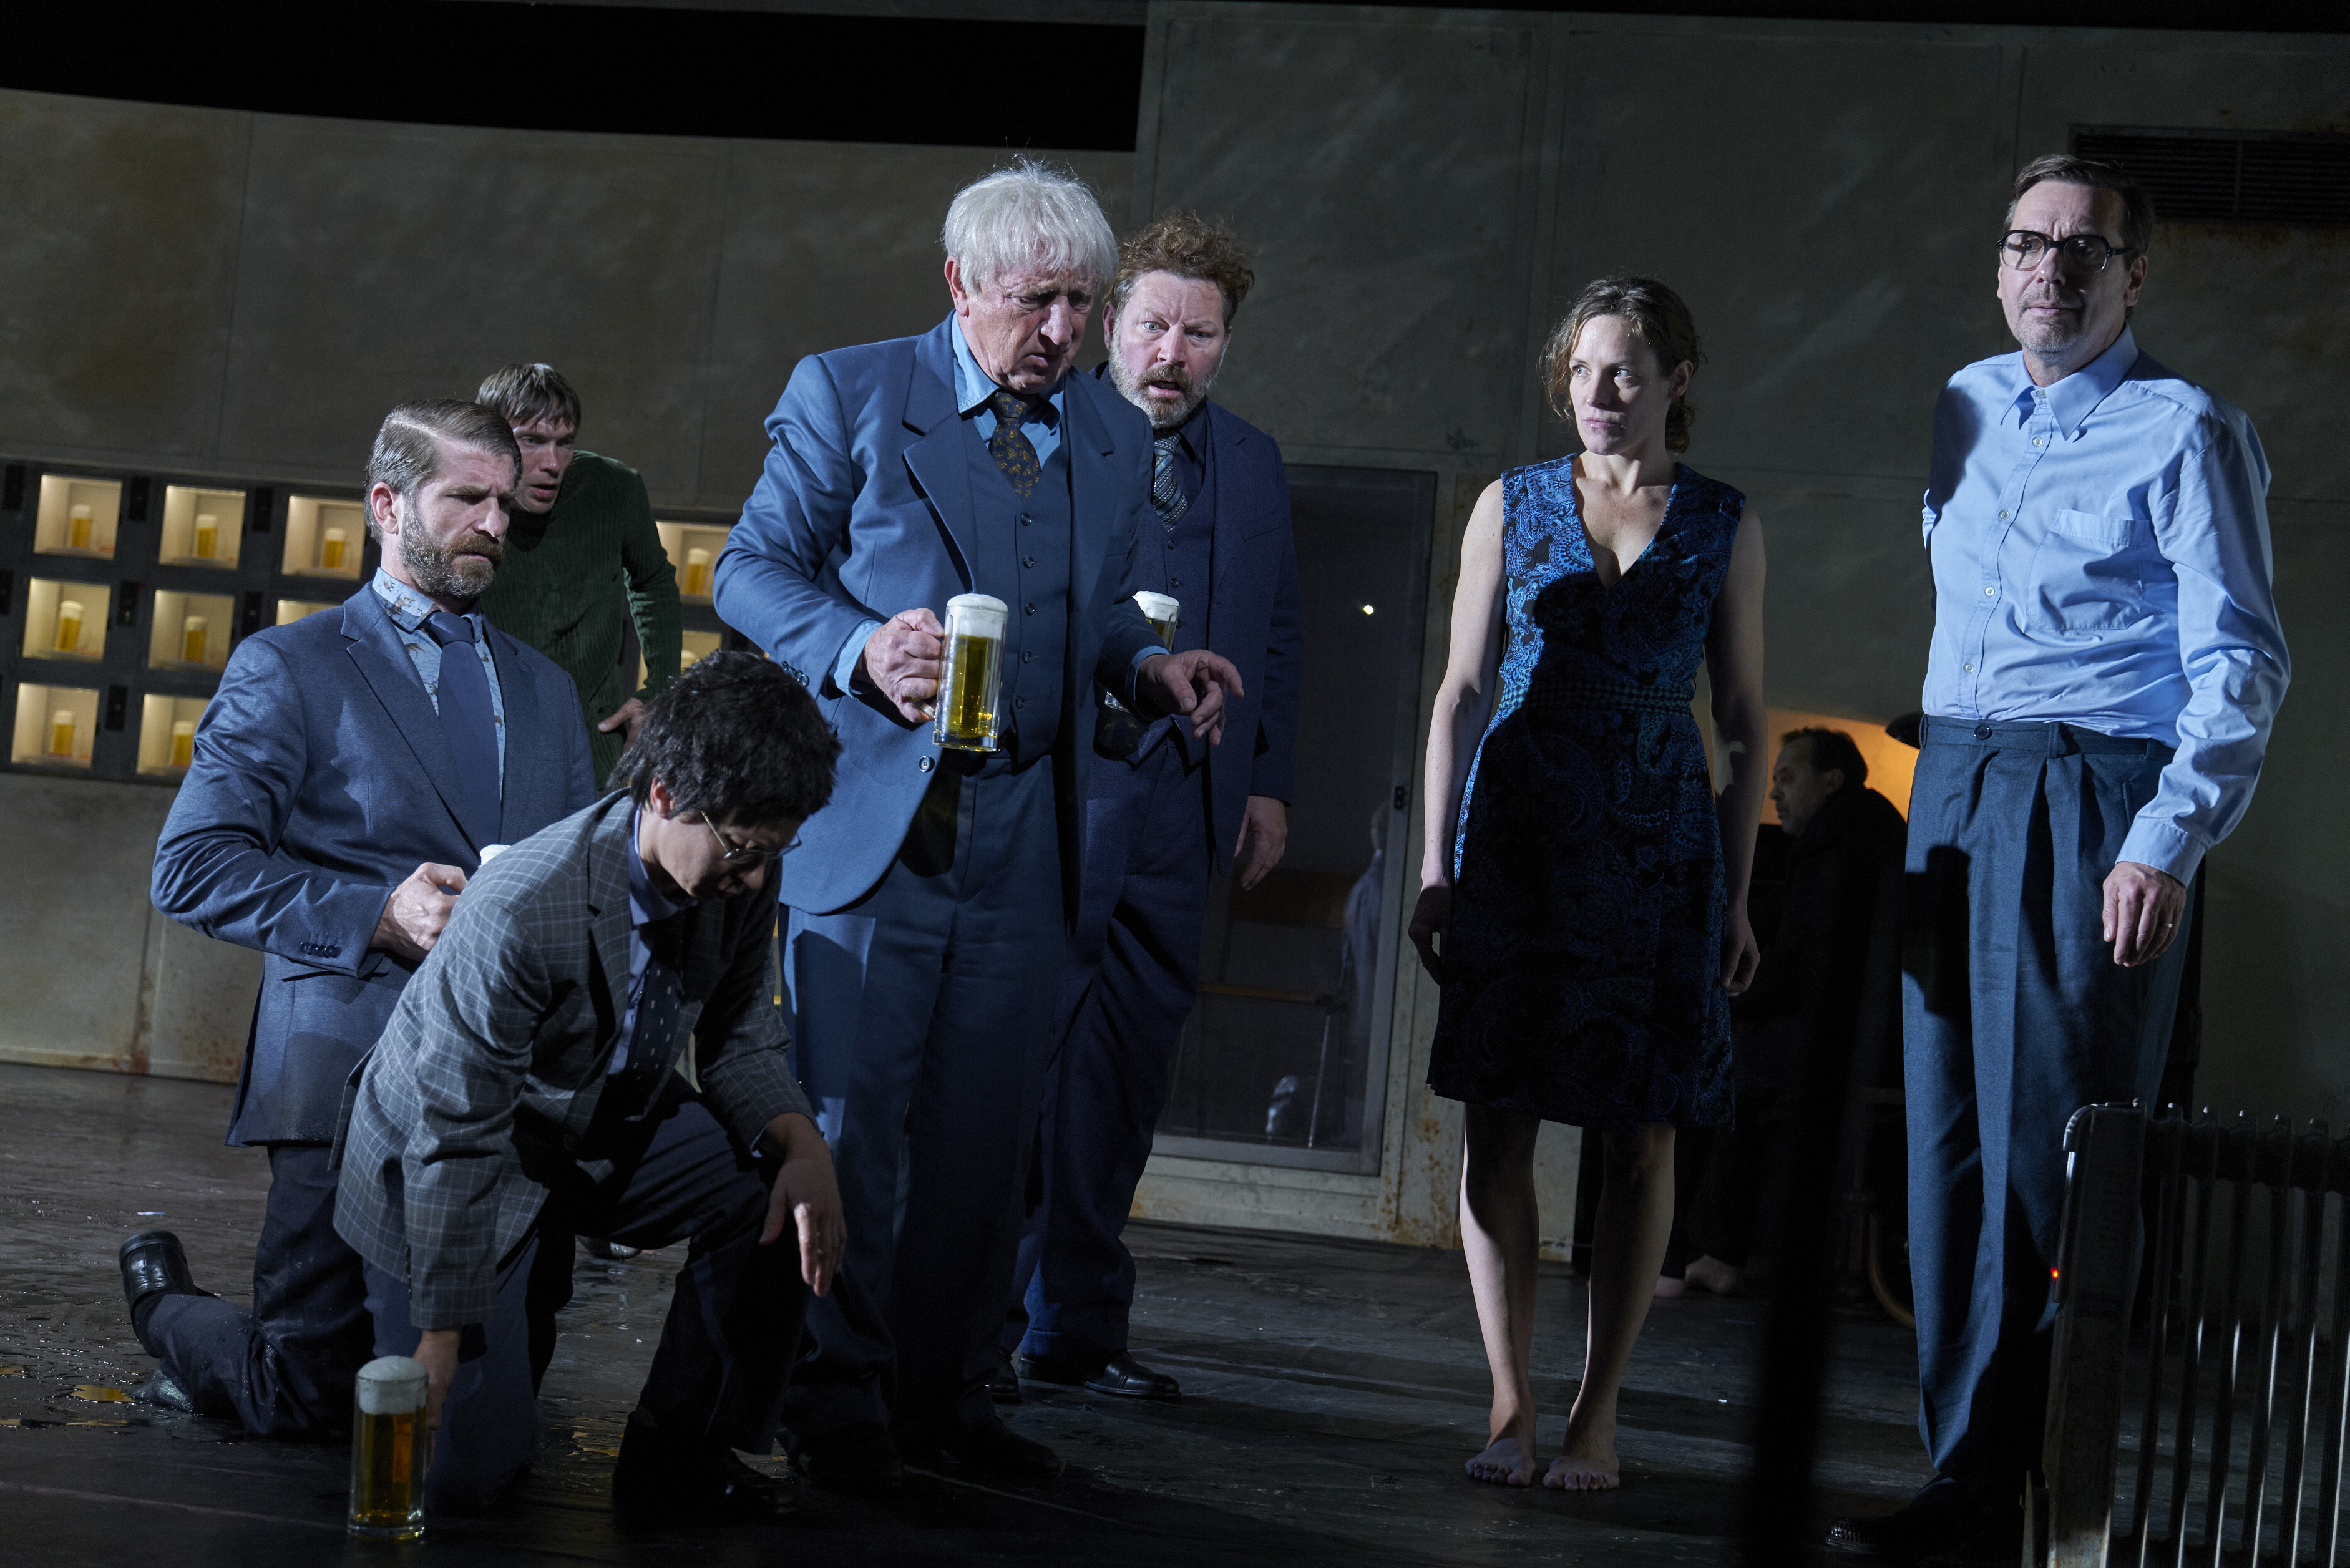 """Members of the acting company in a scene from the production """"Automatenbüfett""""."""